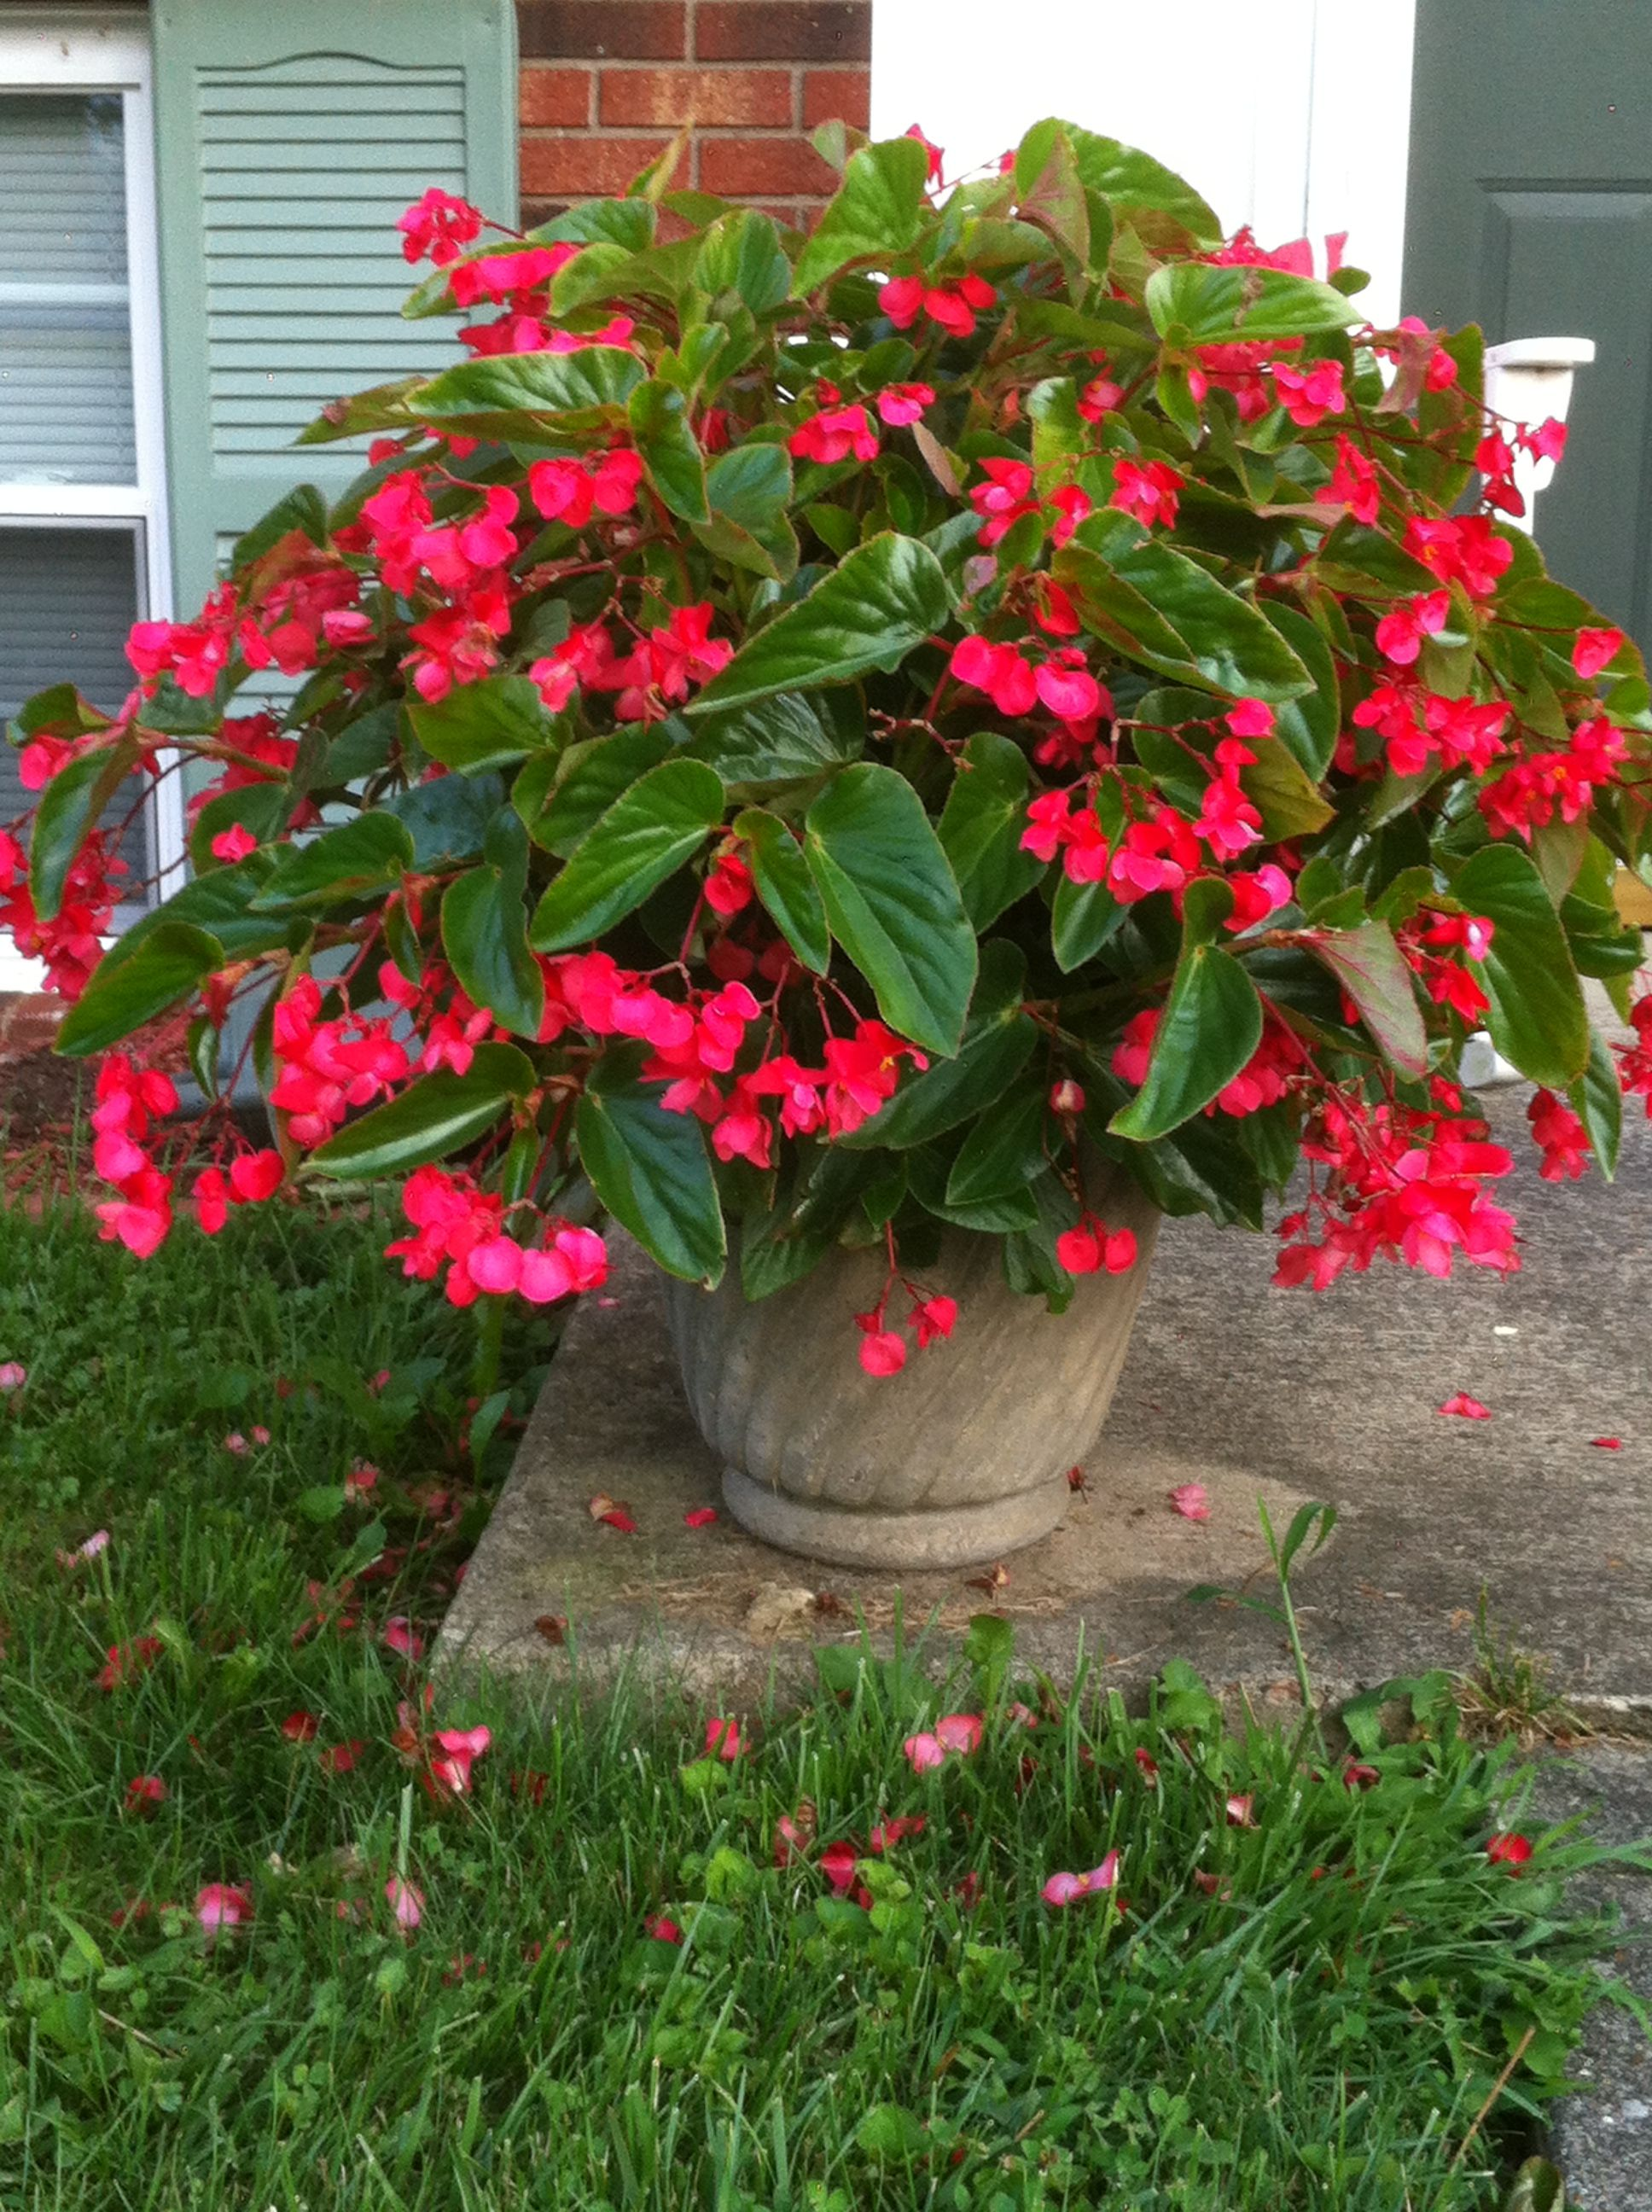 Dragonwing Begonias Like Partial To Full Shade Are So Easy To Care For Just Don T Let Them Sit Container Gardening Flowers Summer Flowers Garden Shade Plants